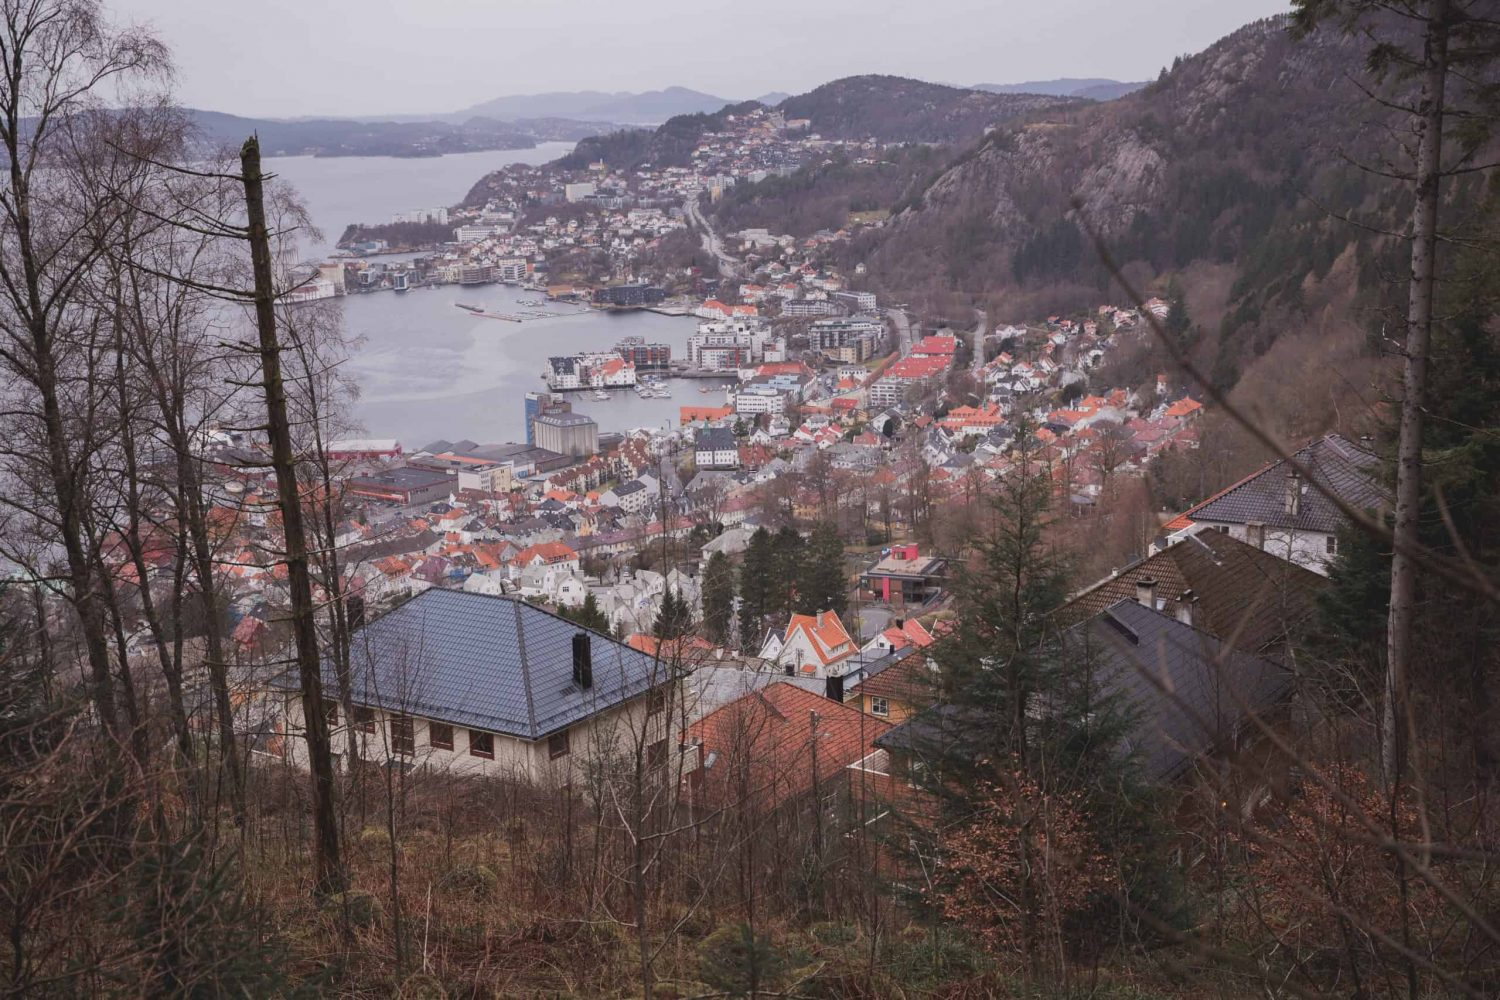 View of Bergen, Norway from the Fløyen hiking trail.